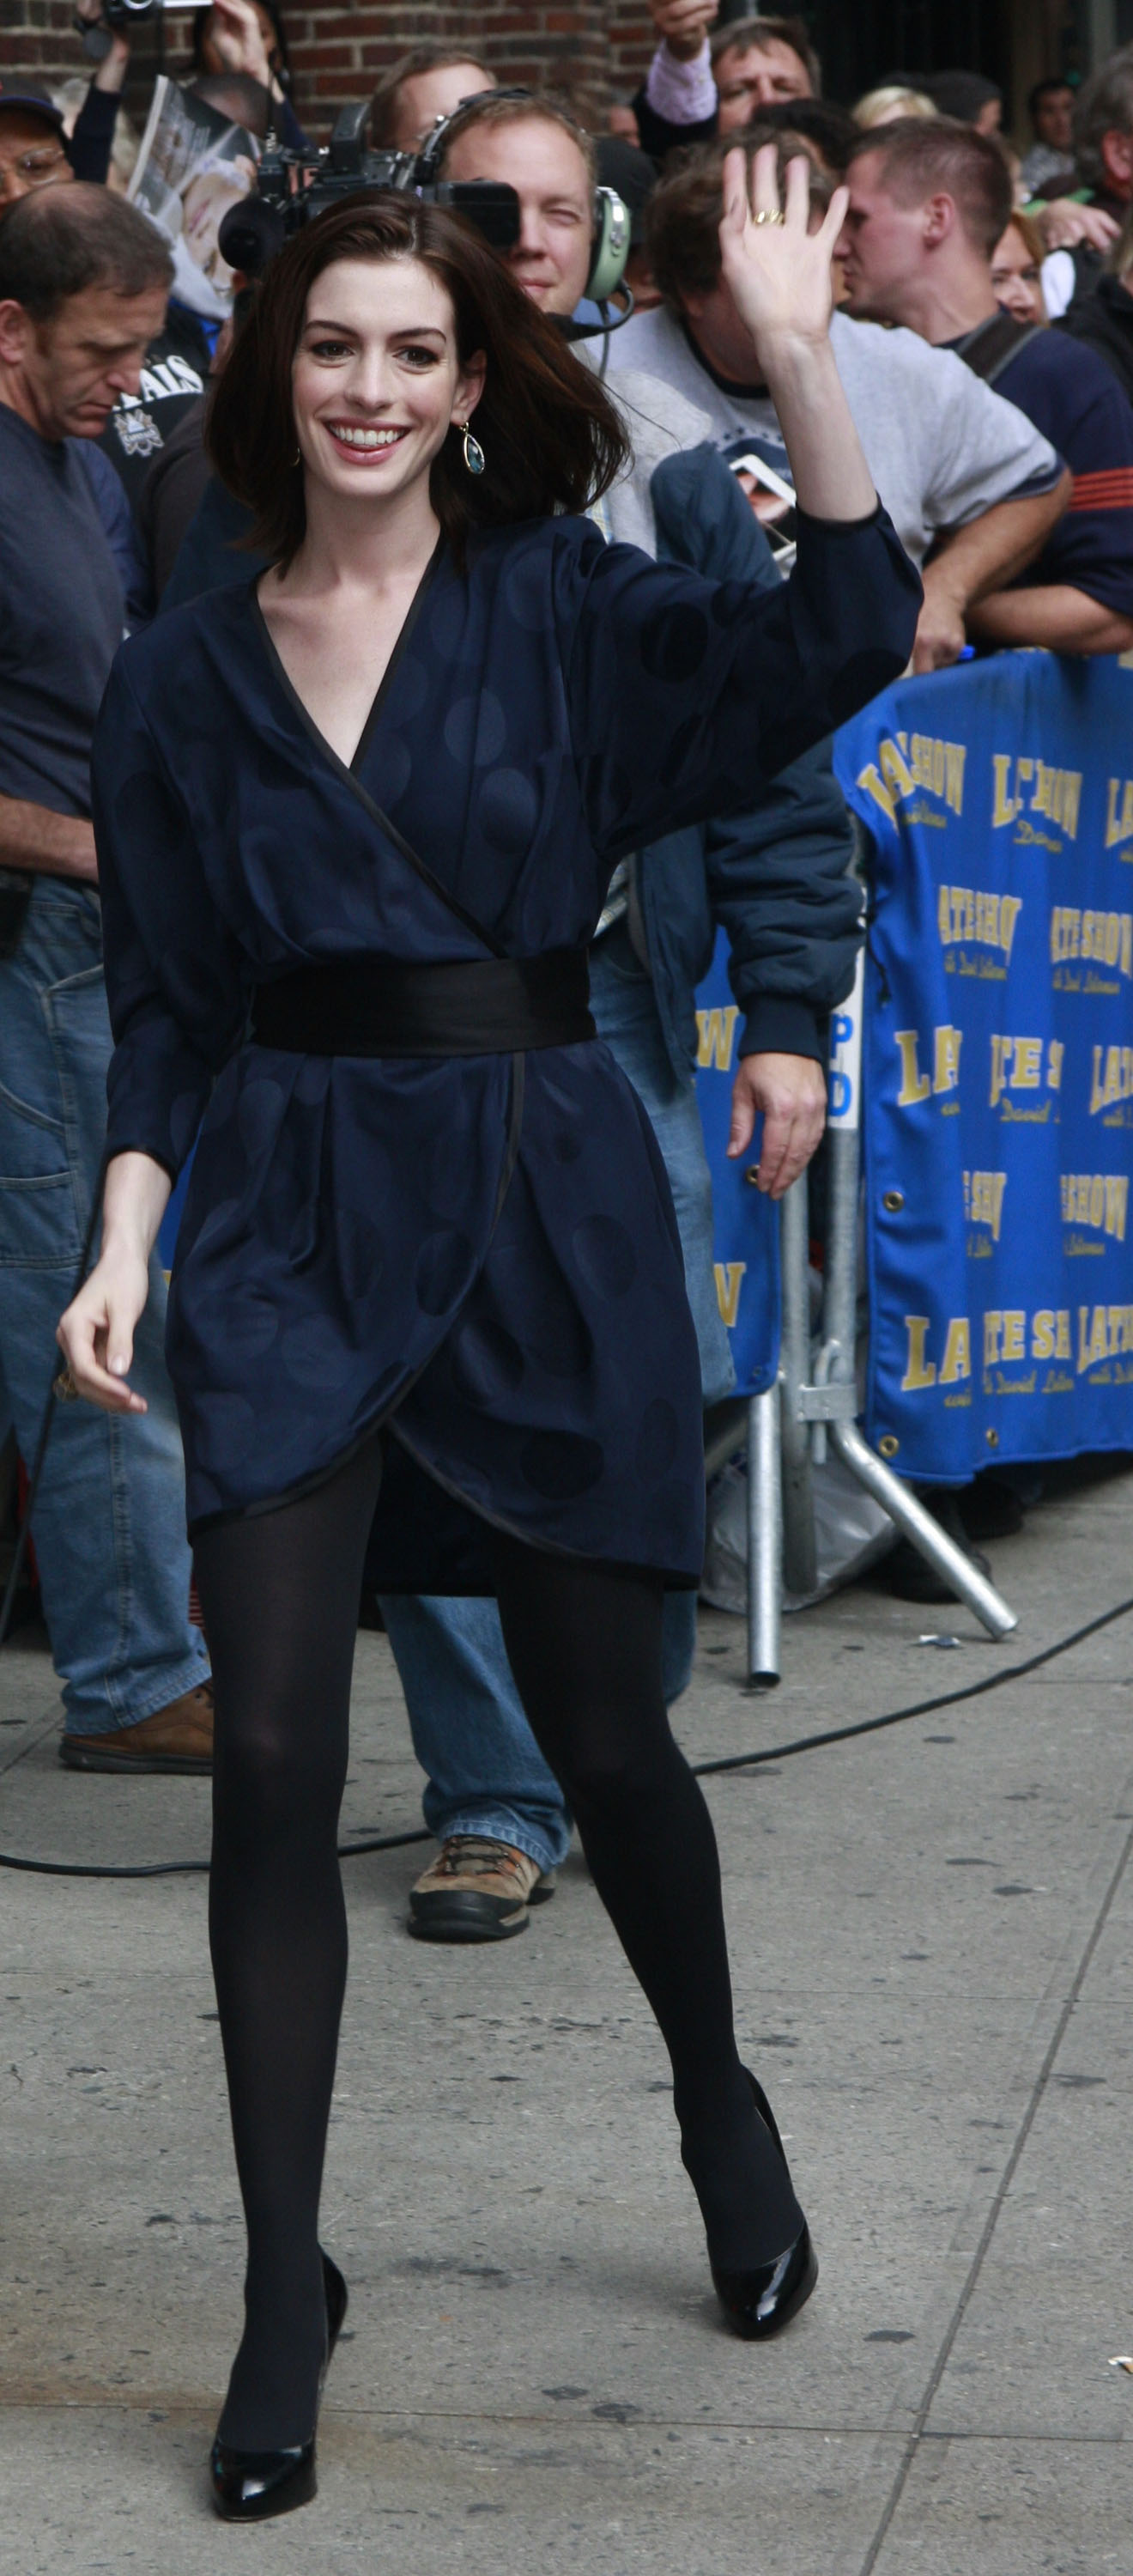 46641_Anne_Hathaway_2008-09-30_-_visits_the_Late_Show_with_David_Letterman_122_653lo.jpg